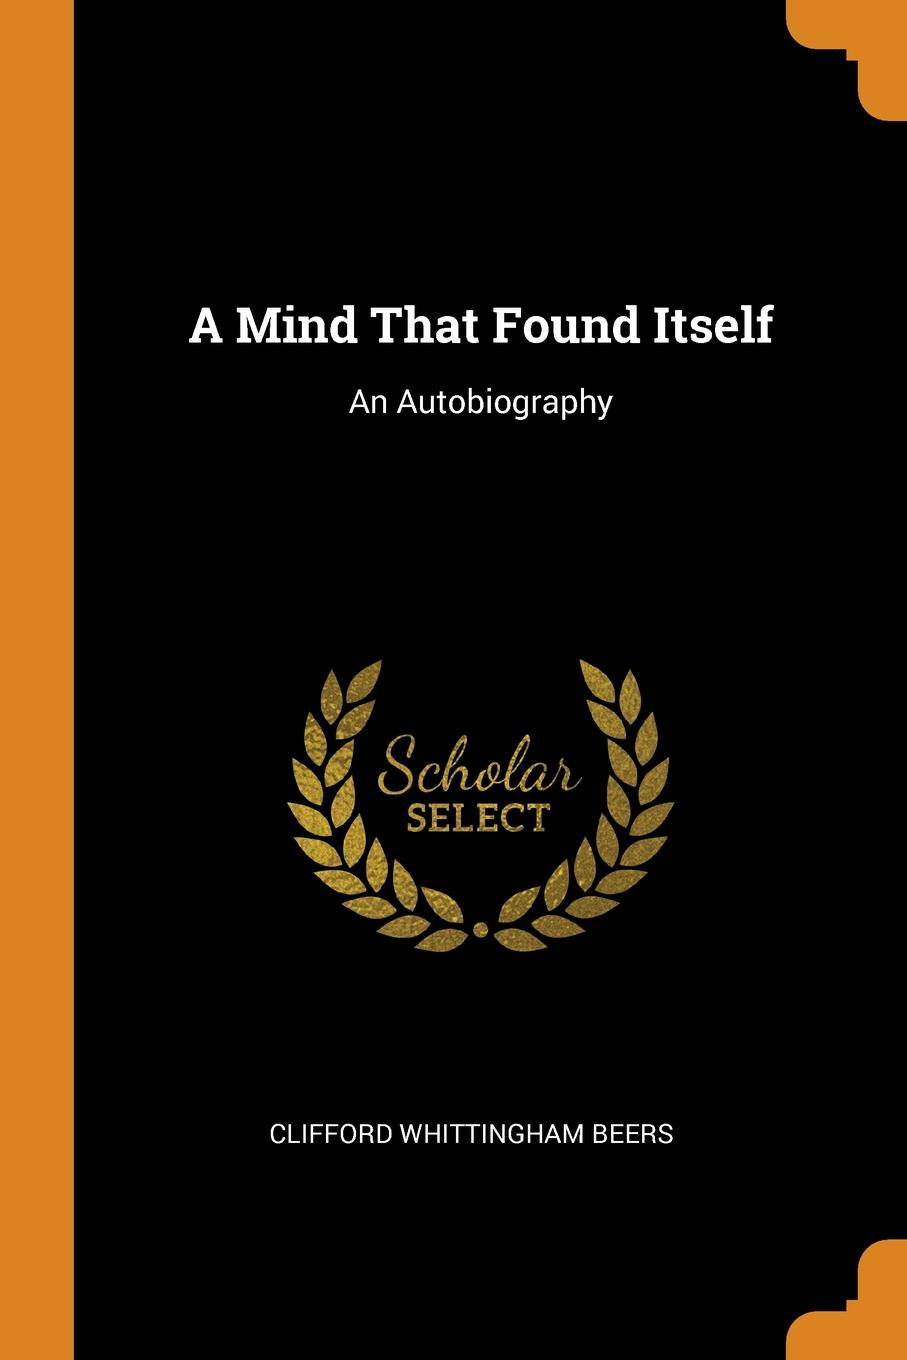 Clifford Whittingham Beers. A Mind That Found Itself. An Autobiography